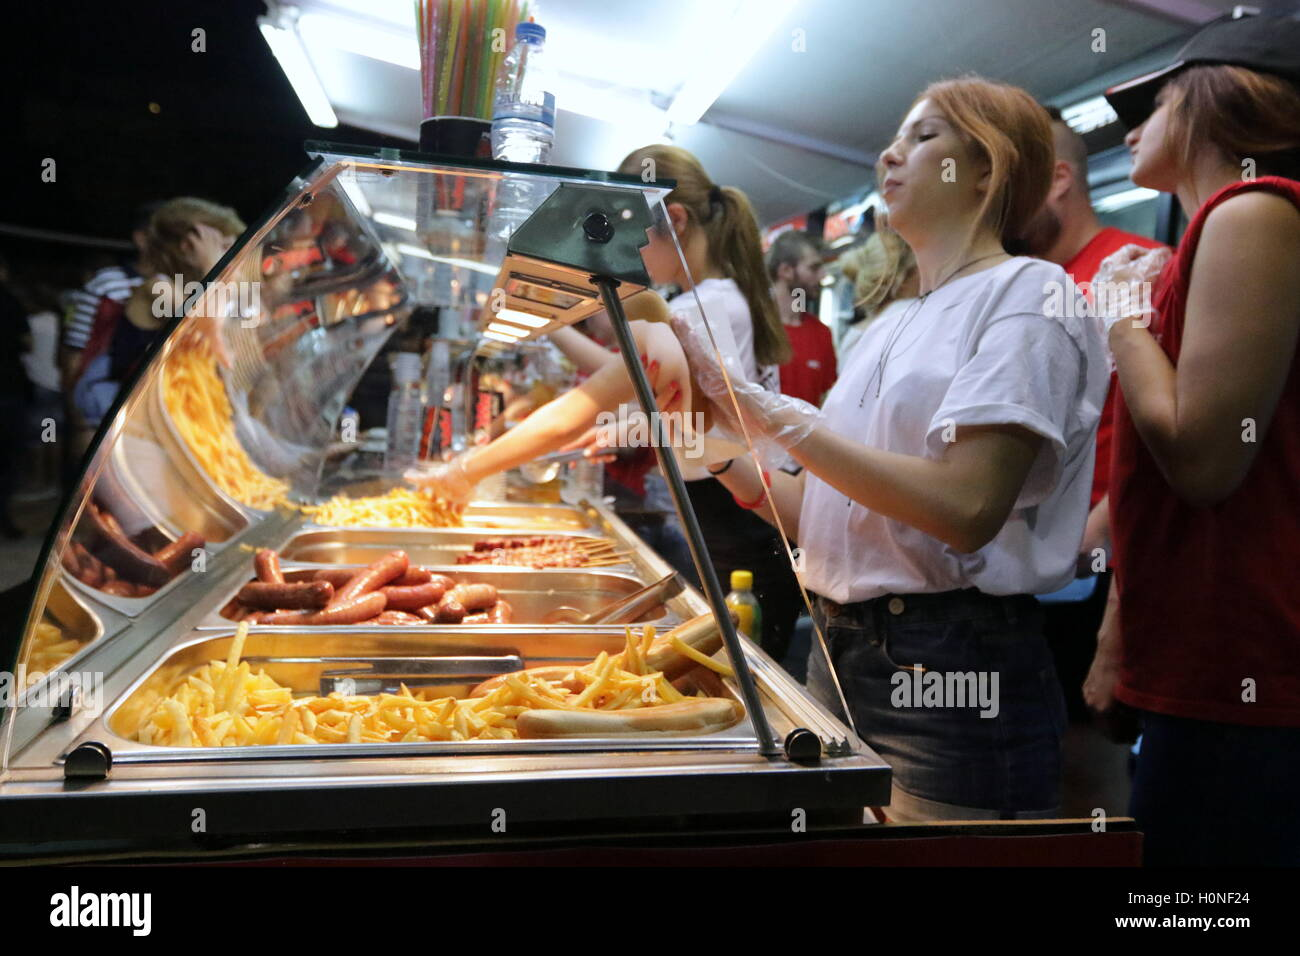 Fast food counter in Thessaloniki, Greece - Stock Image